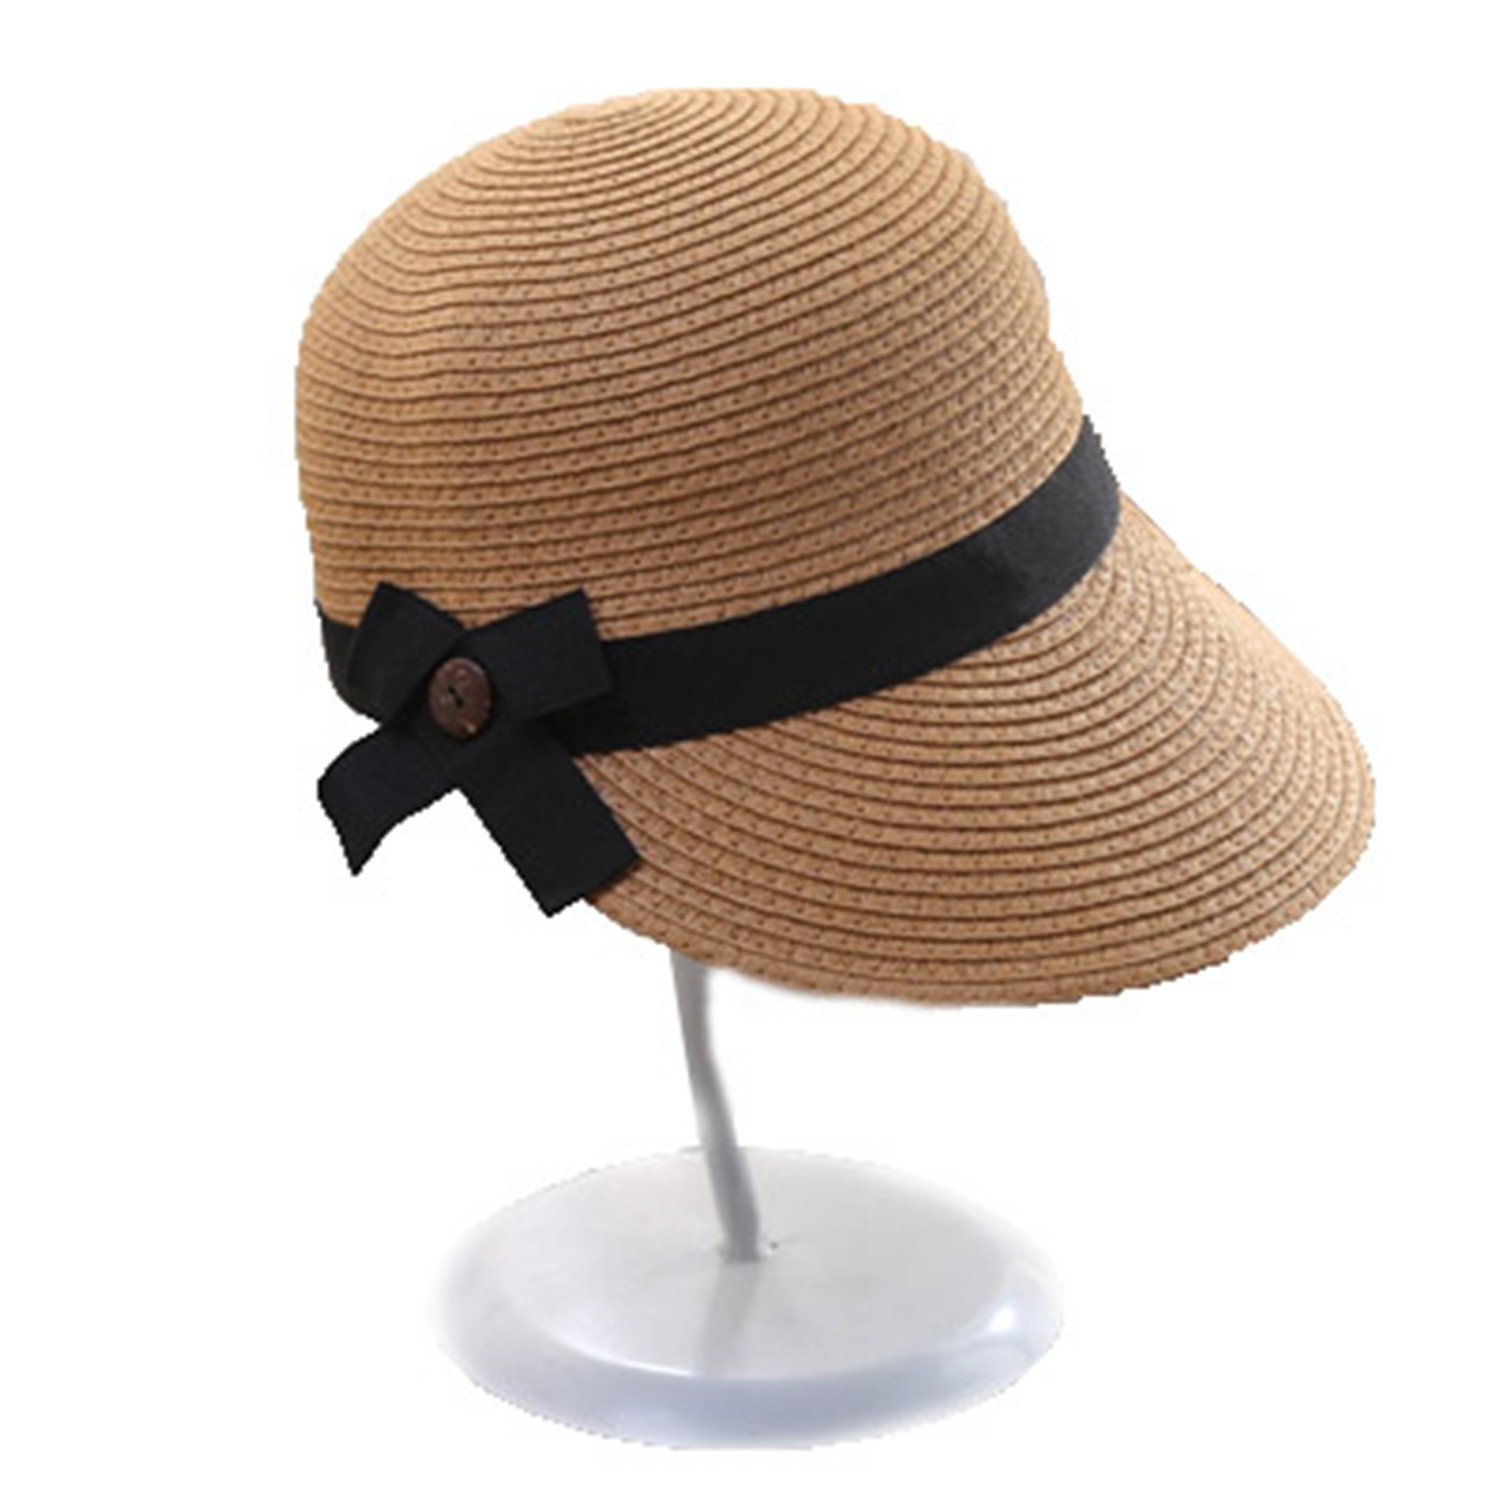 Barry picks Fashion Sun Hats For Women Man Large Brim Straw Hat With Bow Summer Hat For Women Beach Cap,OneSize,Khaki